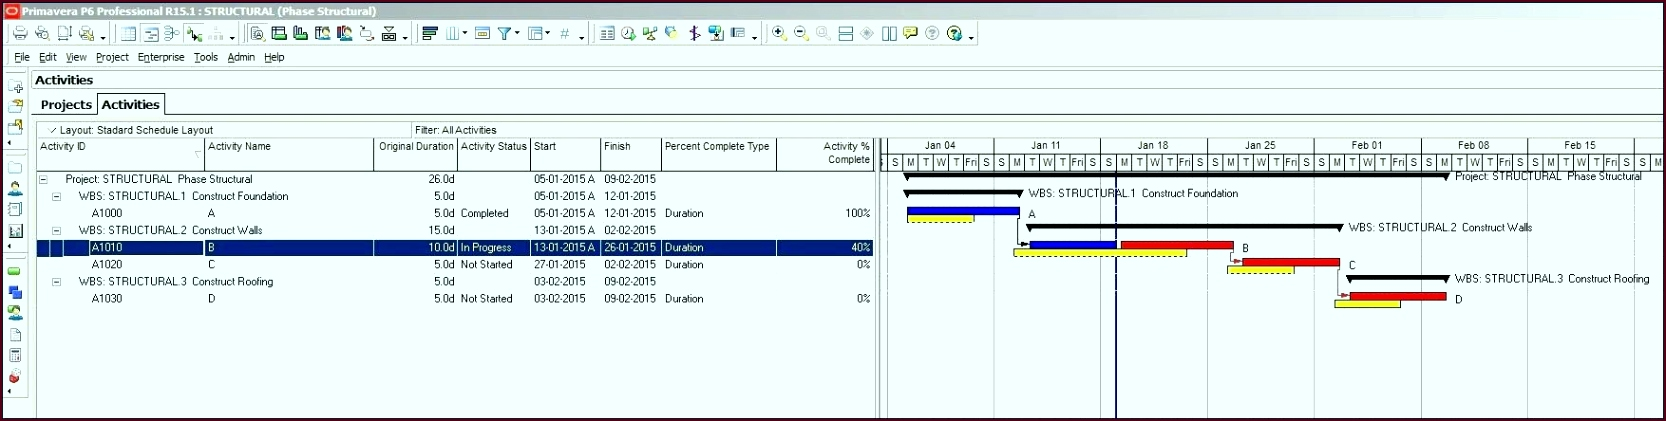 medium size of example project status report weekly format construction progress invoice template tppii